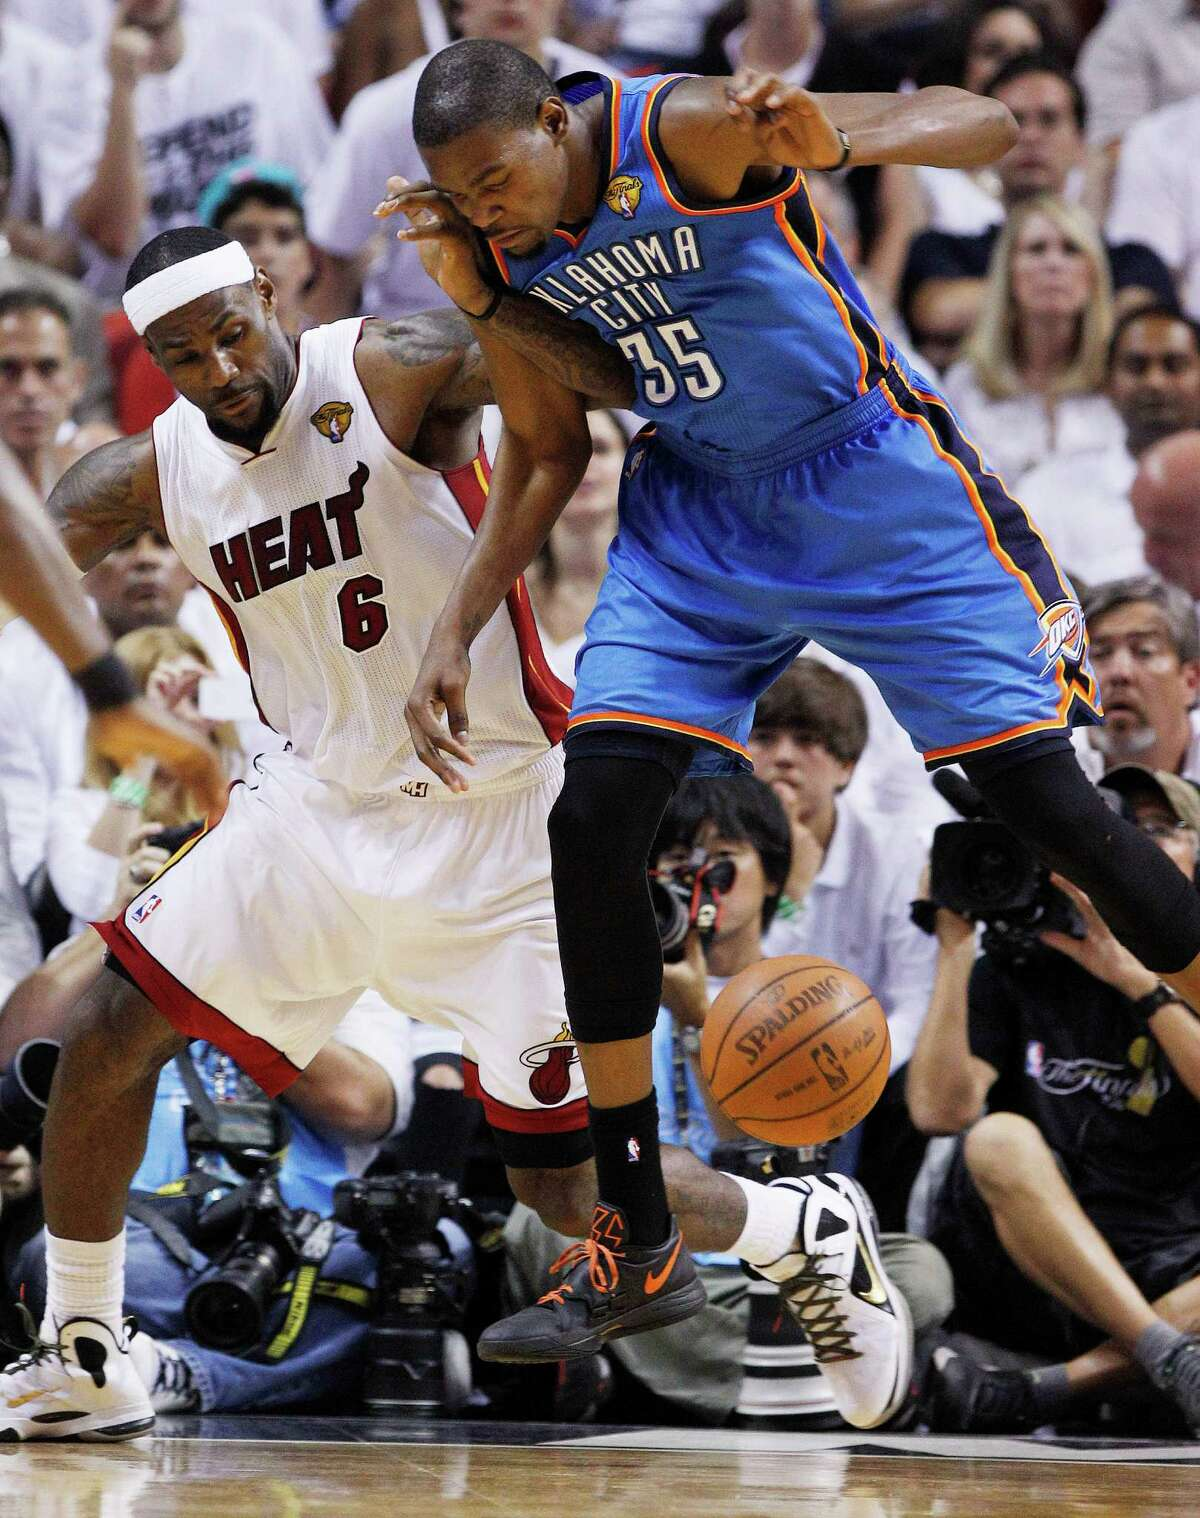 2012: LeBron James (MVP) vs. Kevin Durant Durant had 36 points in the Thunder's Game 1 win in the Finals, but James stopped Durant late in Game 2 to seal the Heat's win. They then won three times in Miami to give James his first title. Durant averaged 30.6 points to James' 28.6 in the series.